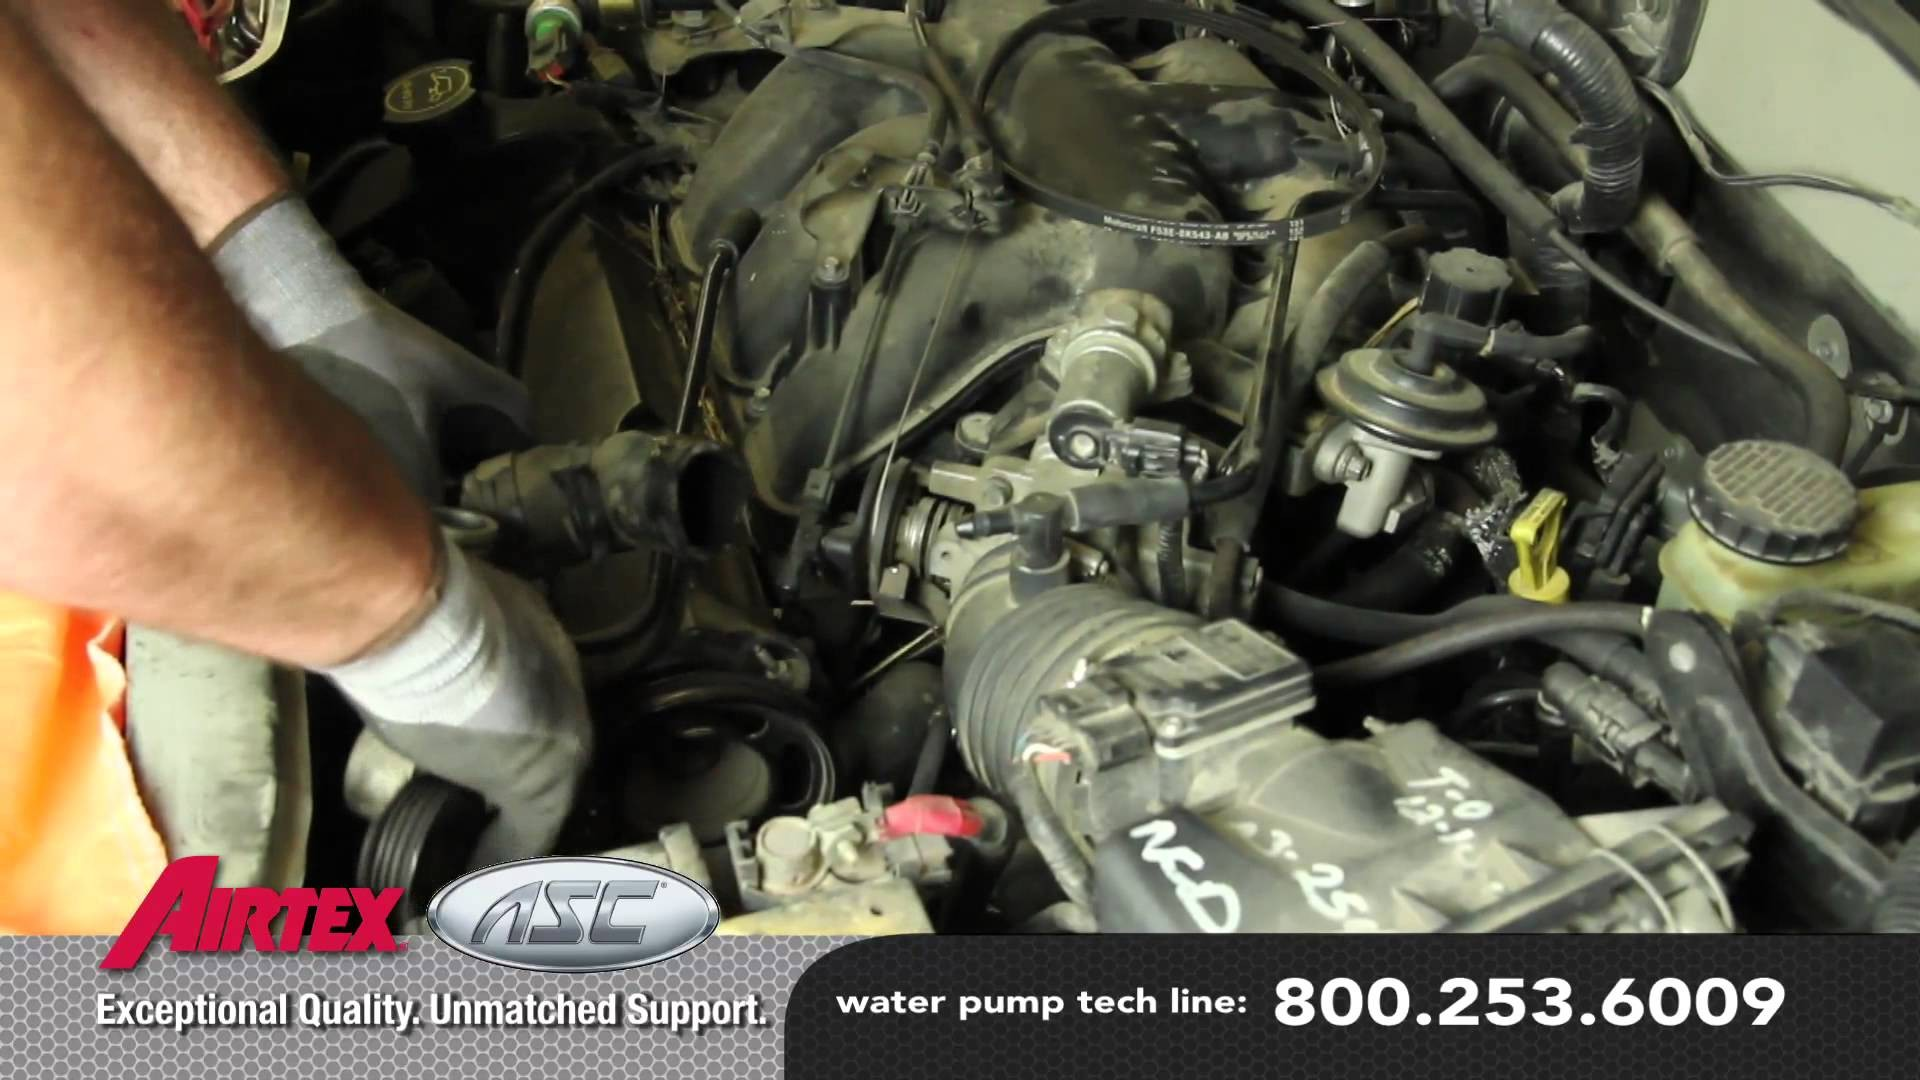 1999 Mercury Cougar Engine Diagram How to Install A Water Pump ford 3 0l V6 Wp 9035 Aw4091 Of 1999 Mercury Cougar Engine Diagram